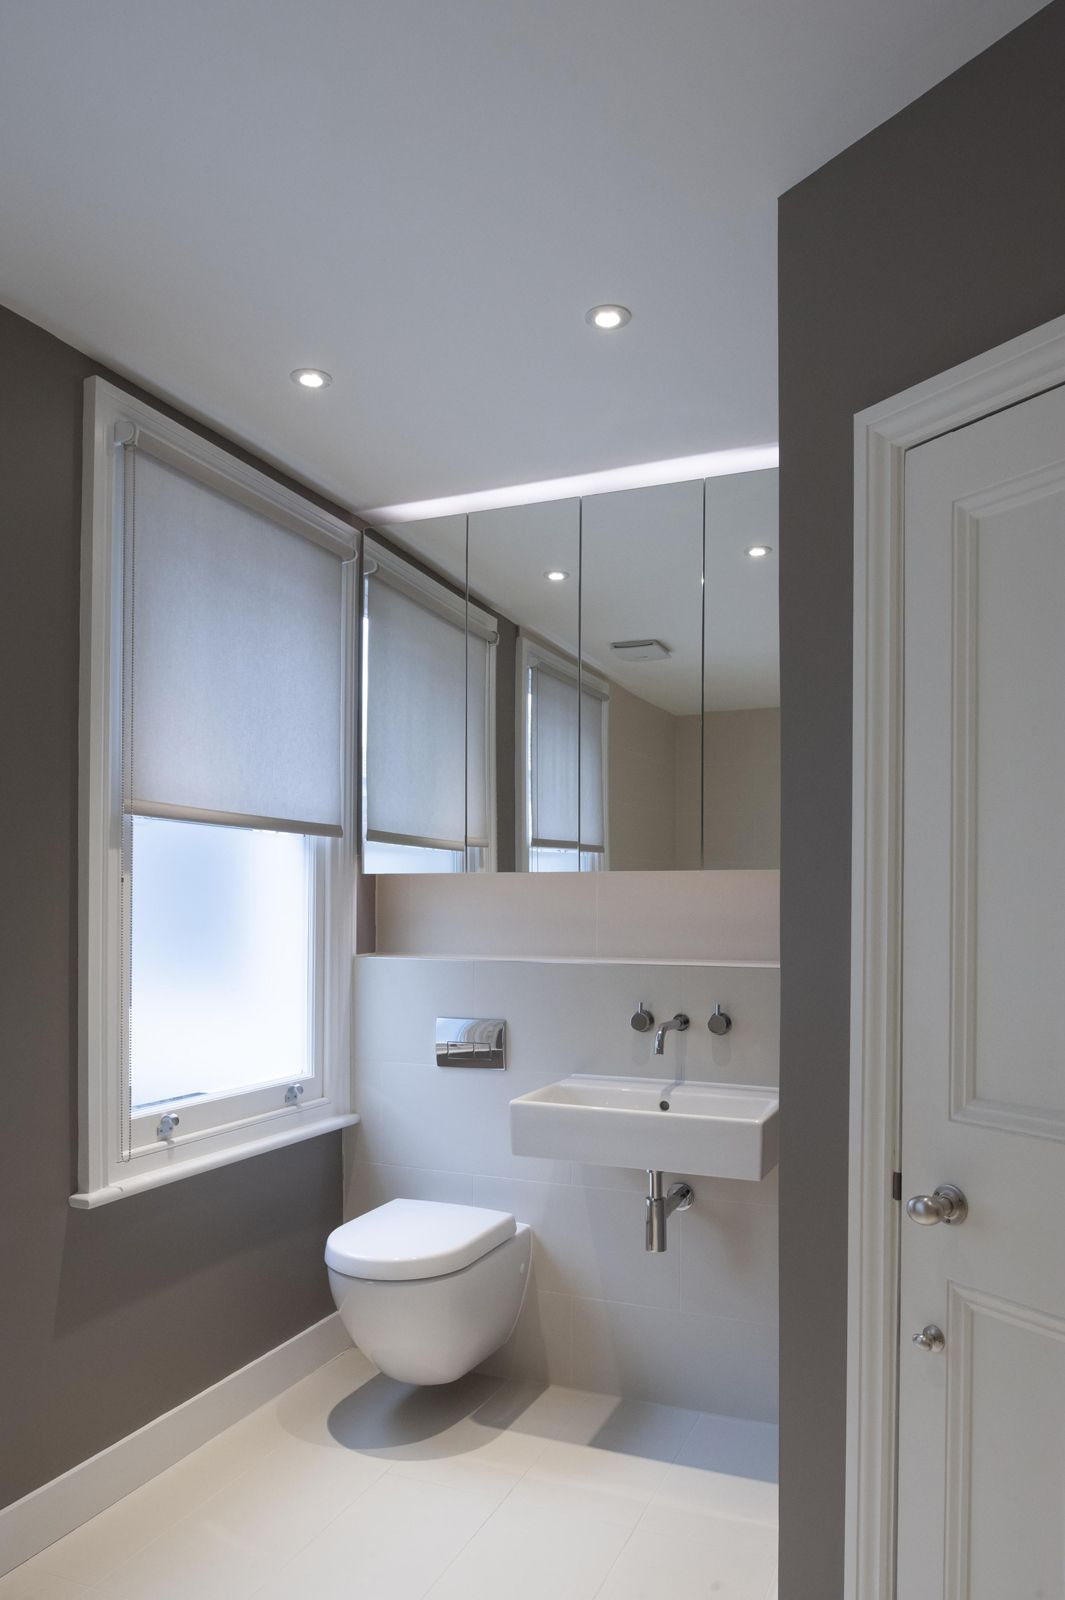 recessed mirror cabinets  shelf above concealed cistern